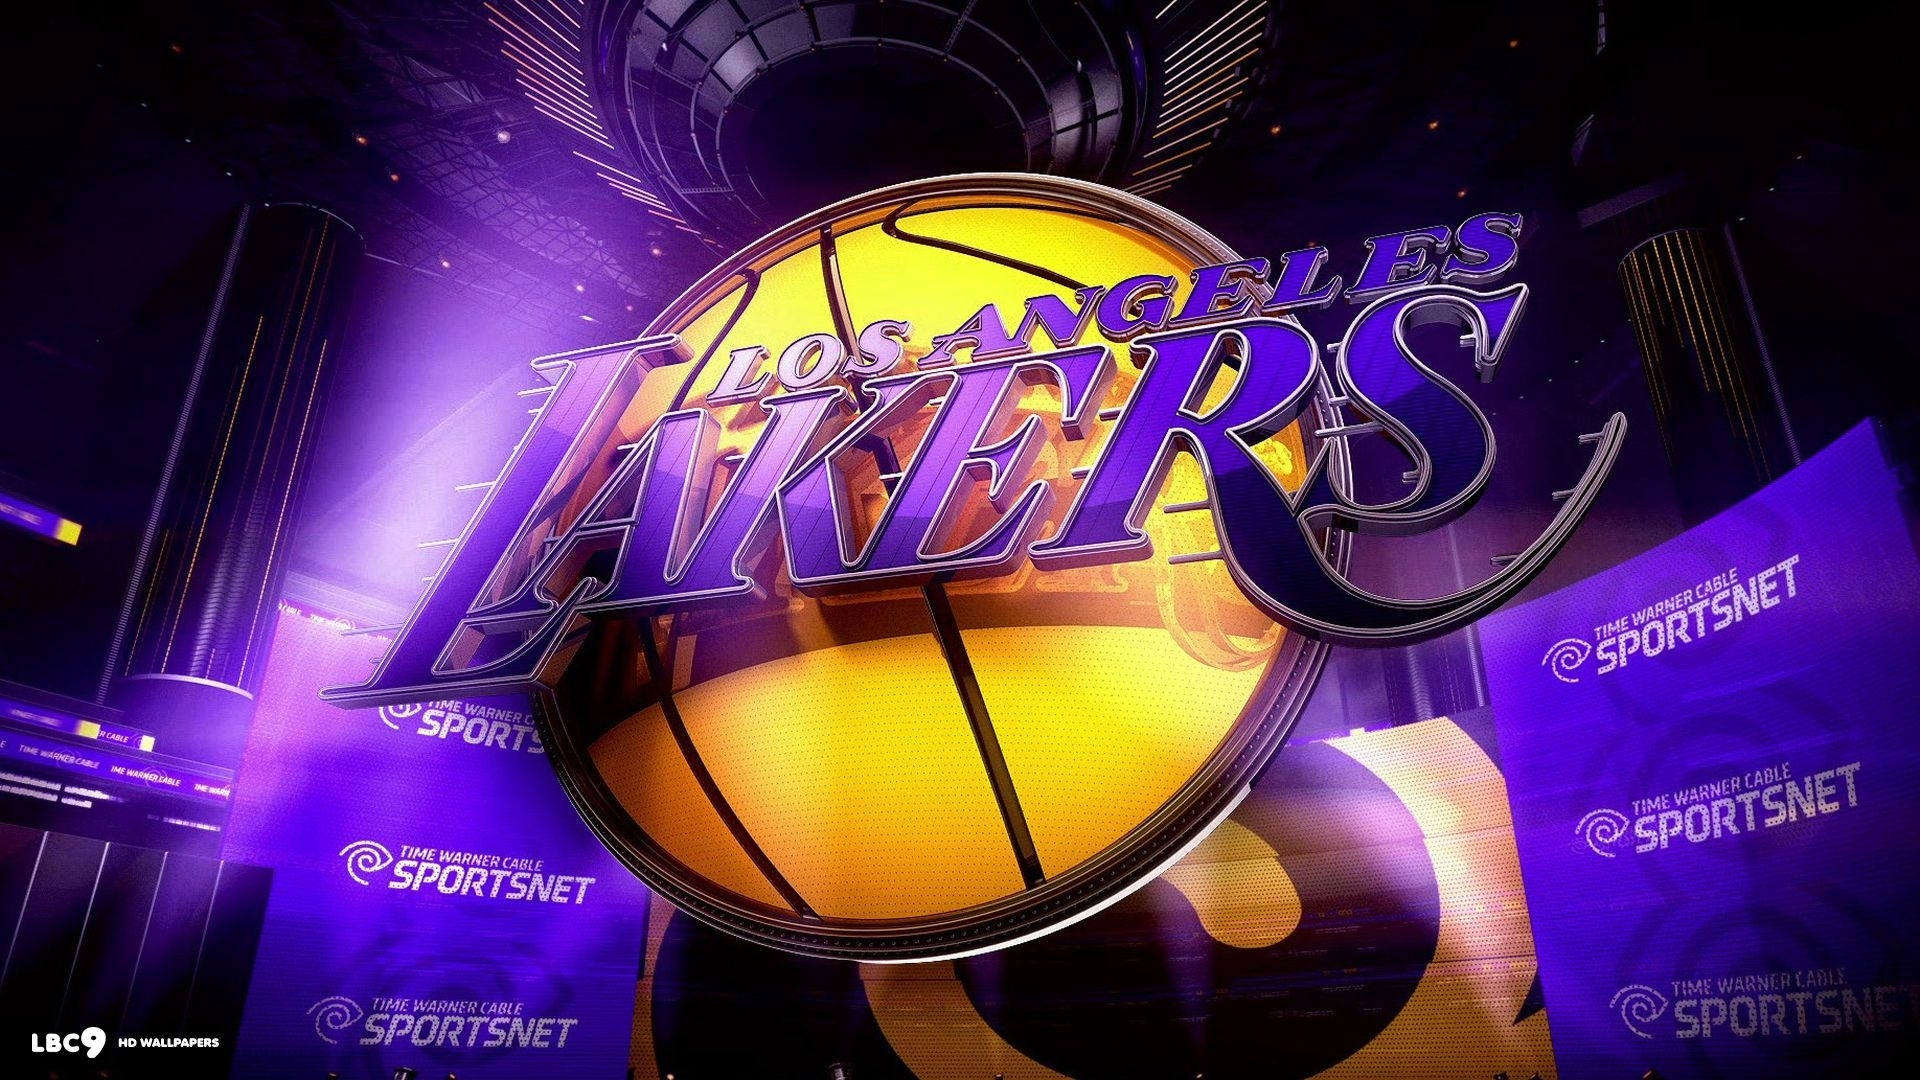 3d lakers wallpaper high definition - 2018 wallpapers hd | los